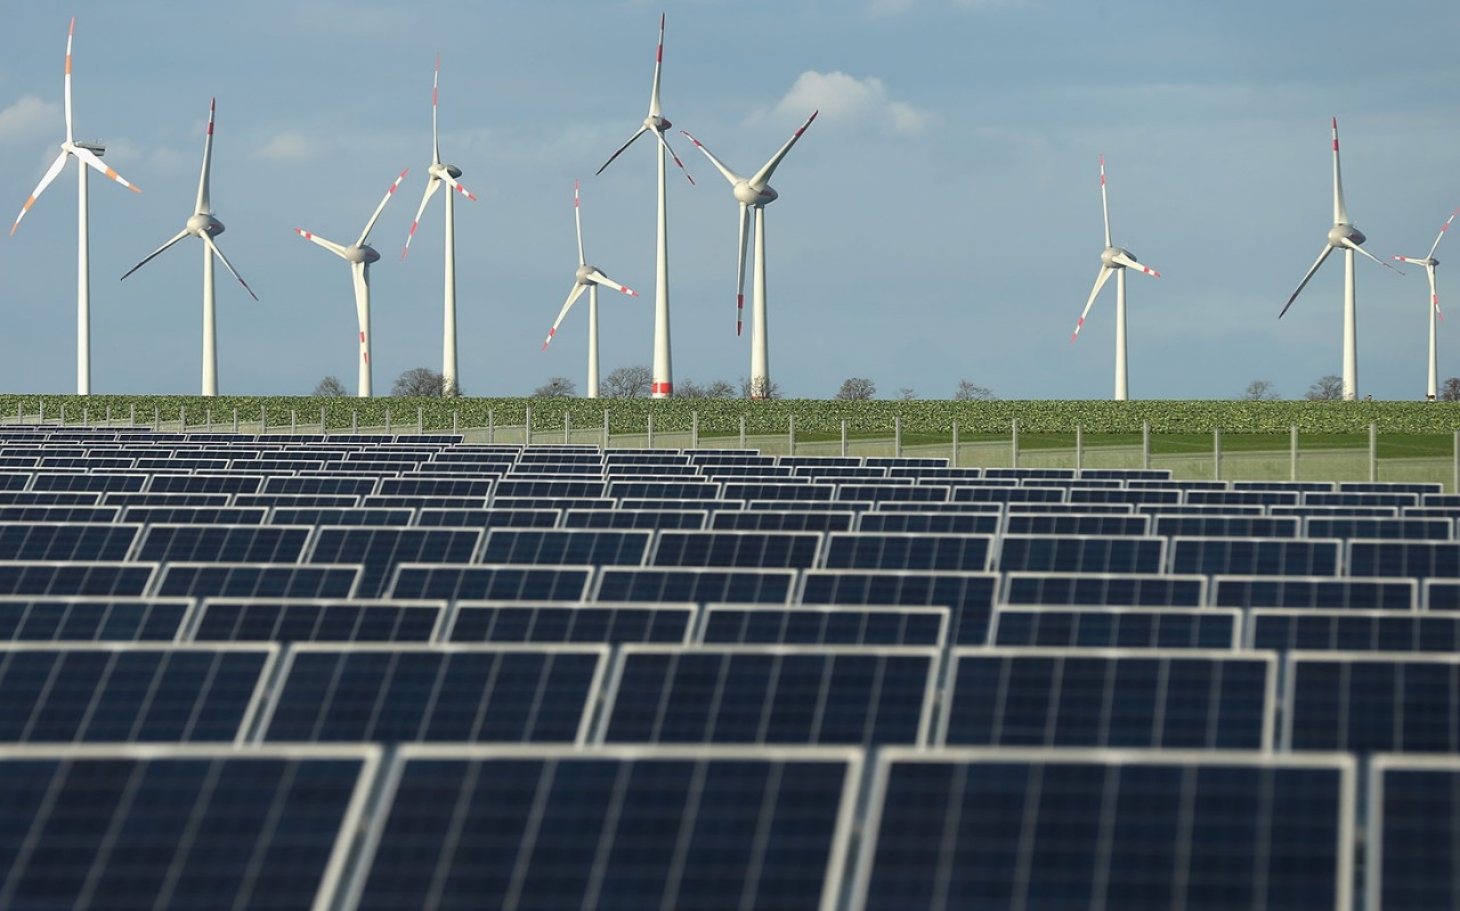 Strategies For Energy Security And Climate Protection Are